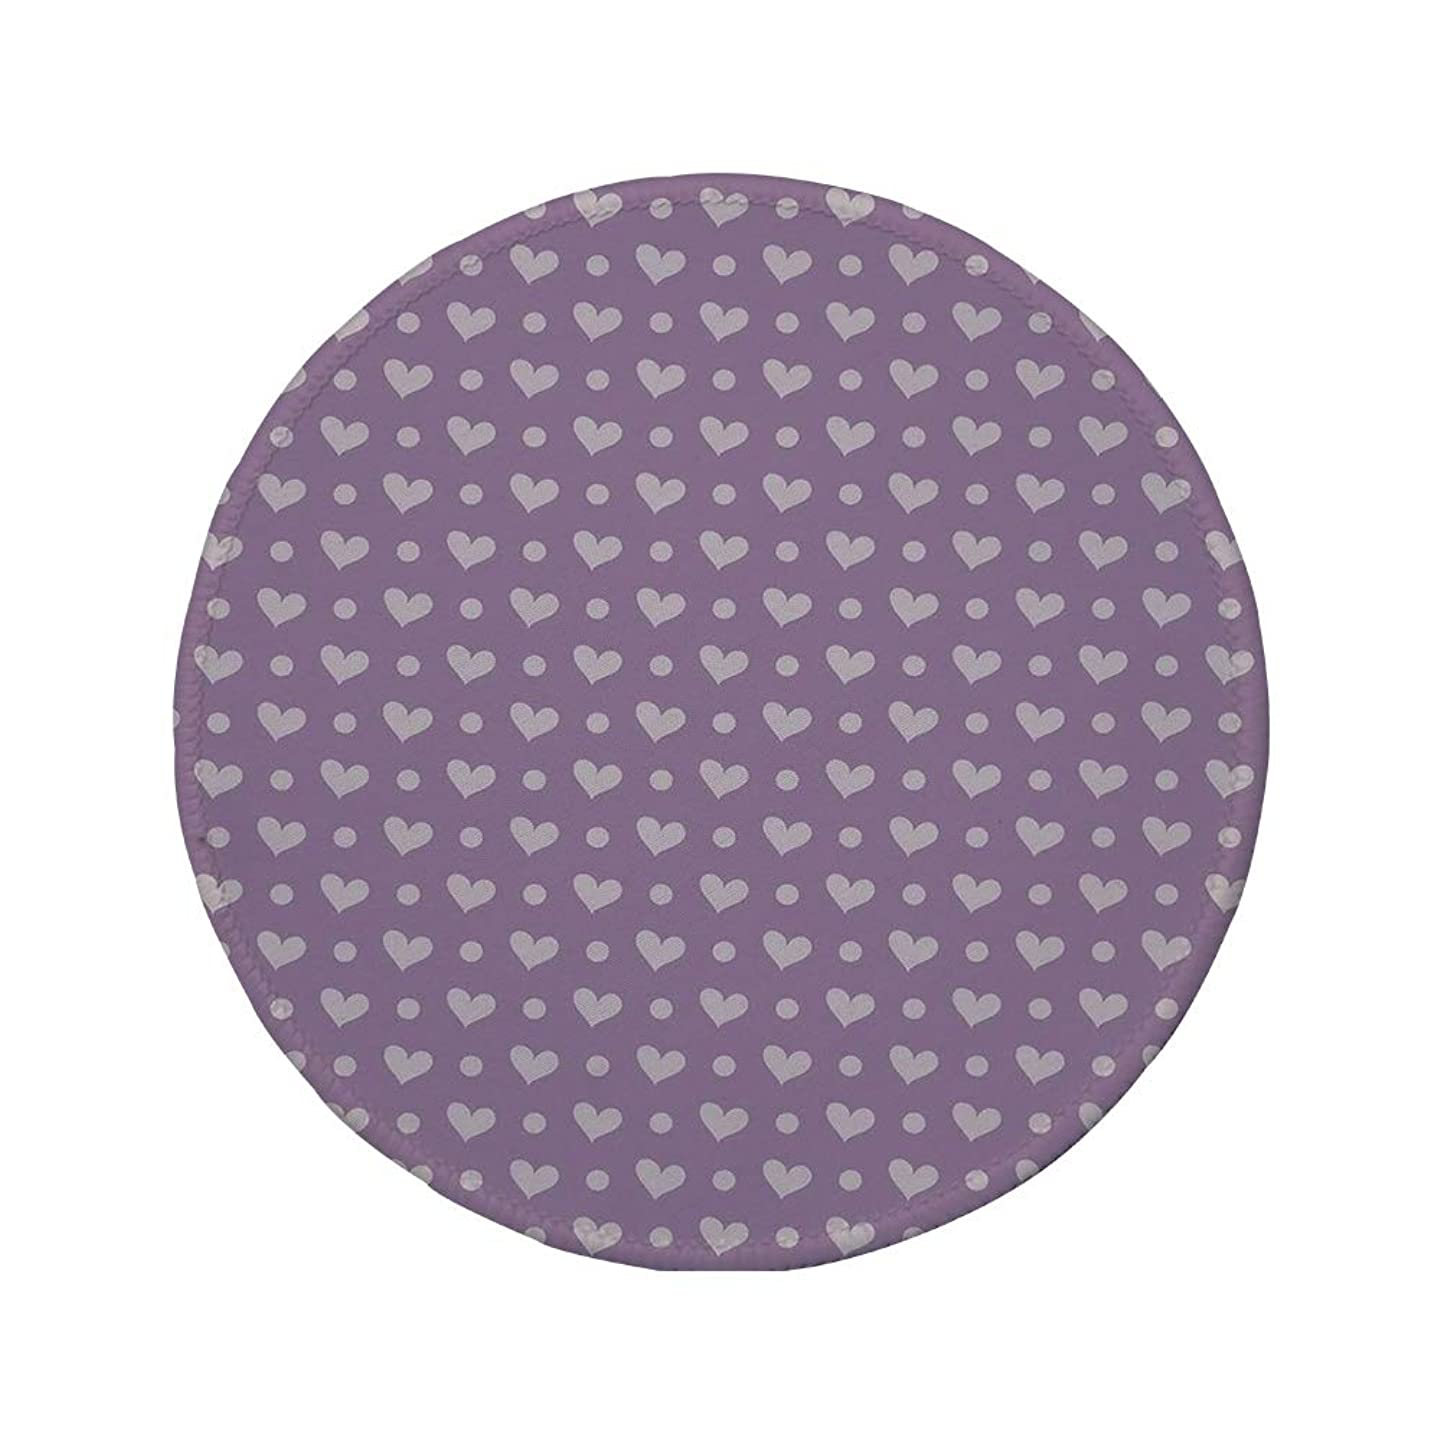 Non-Slip Rubber Round Mouse Pad,Purple,Valentines Day Couple Wedding Bride Inspiring Heart Icon Design Image Decorative,Lavander and Purple,11.8